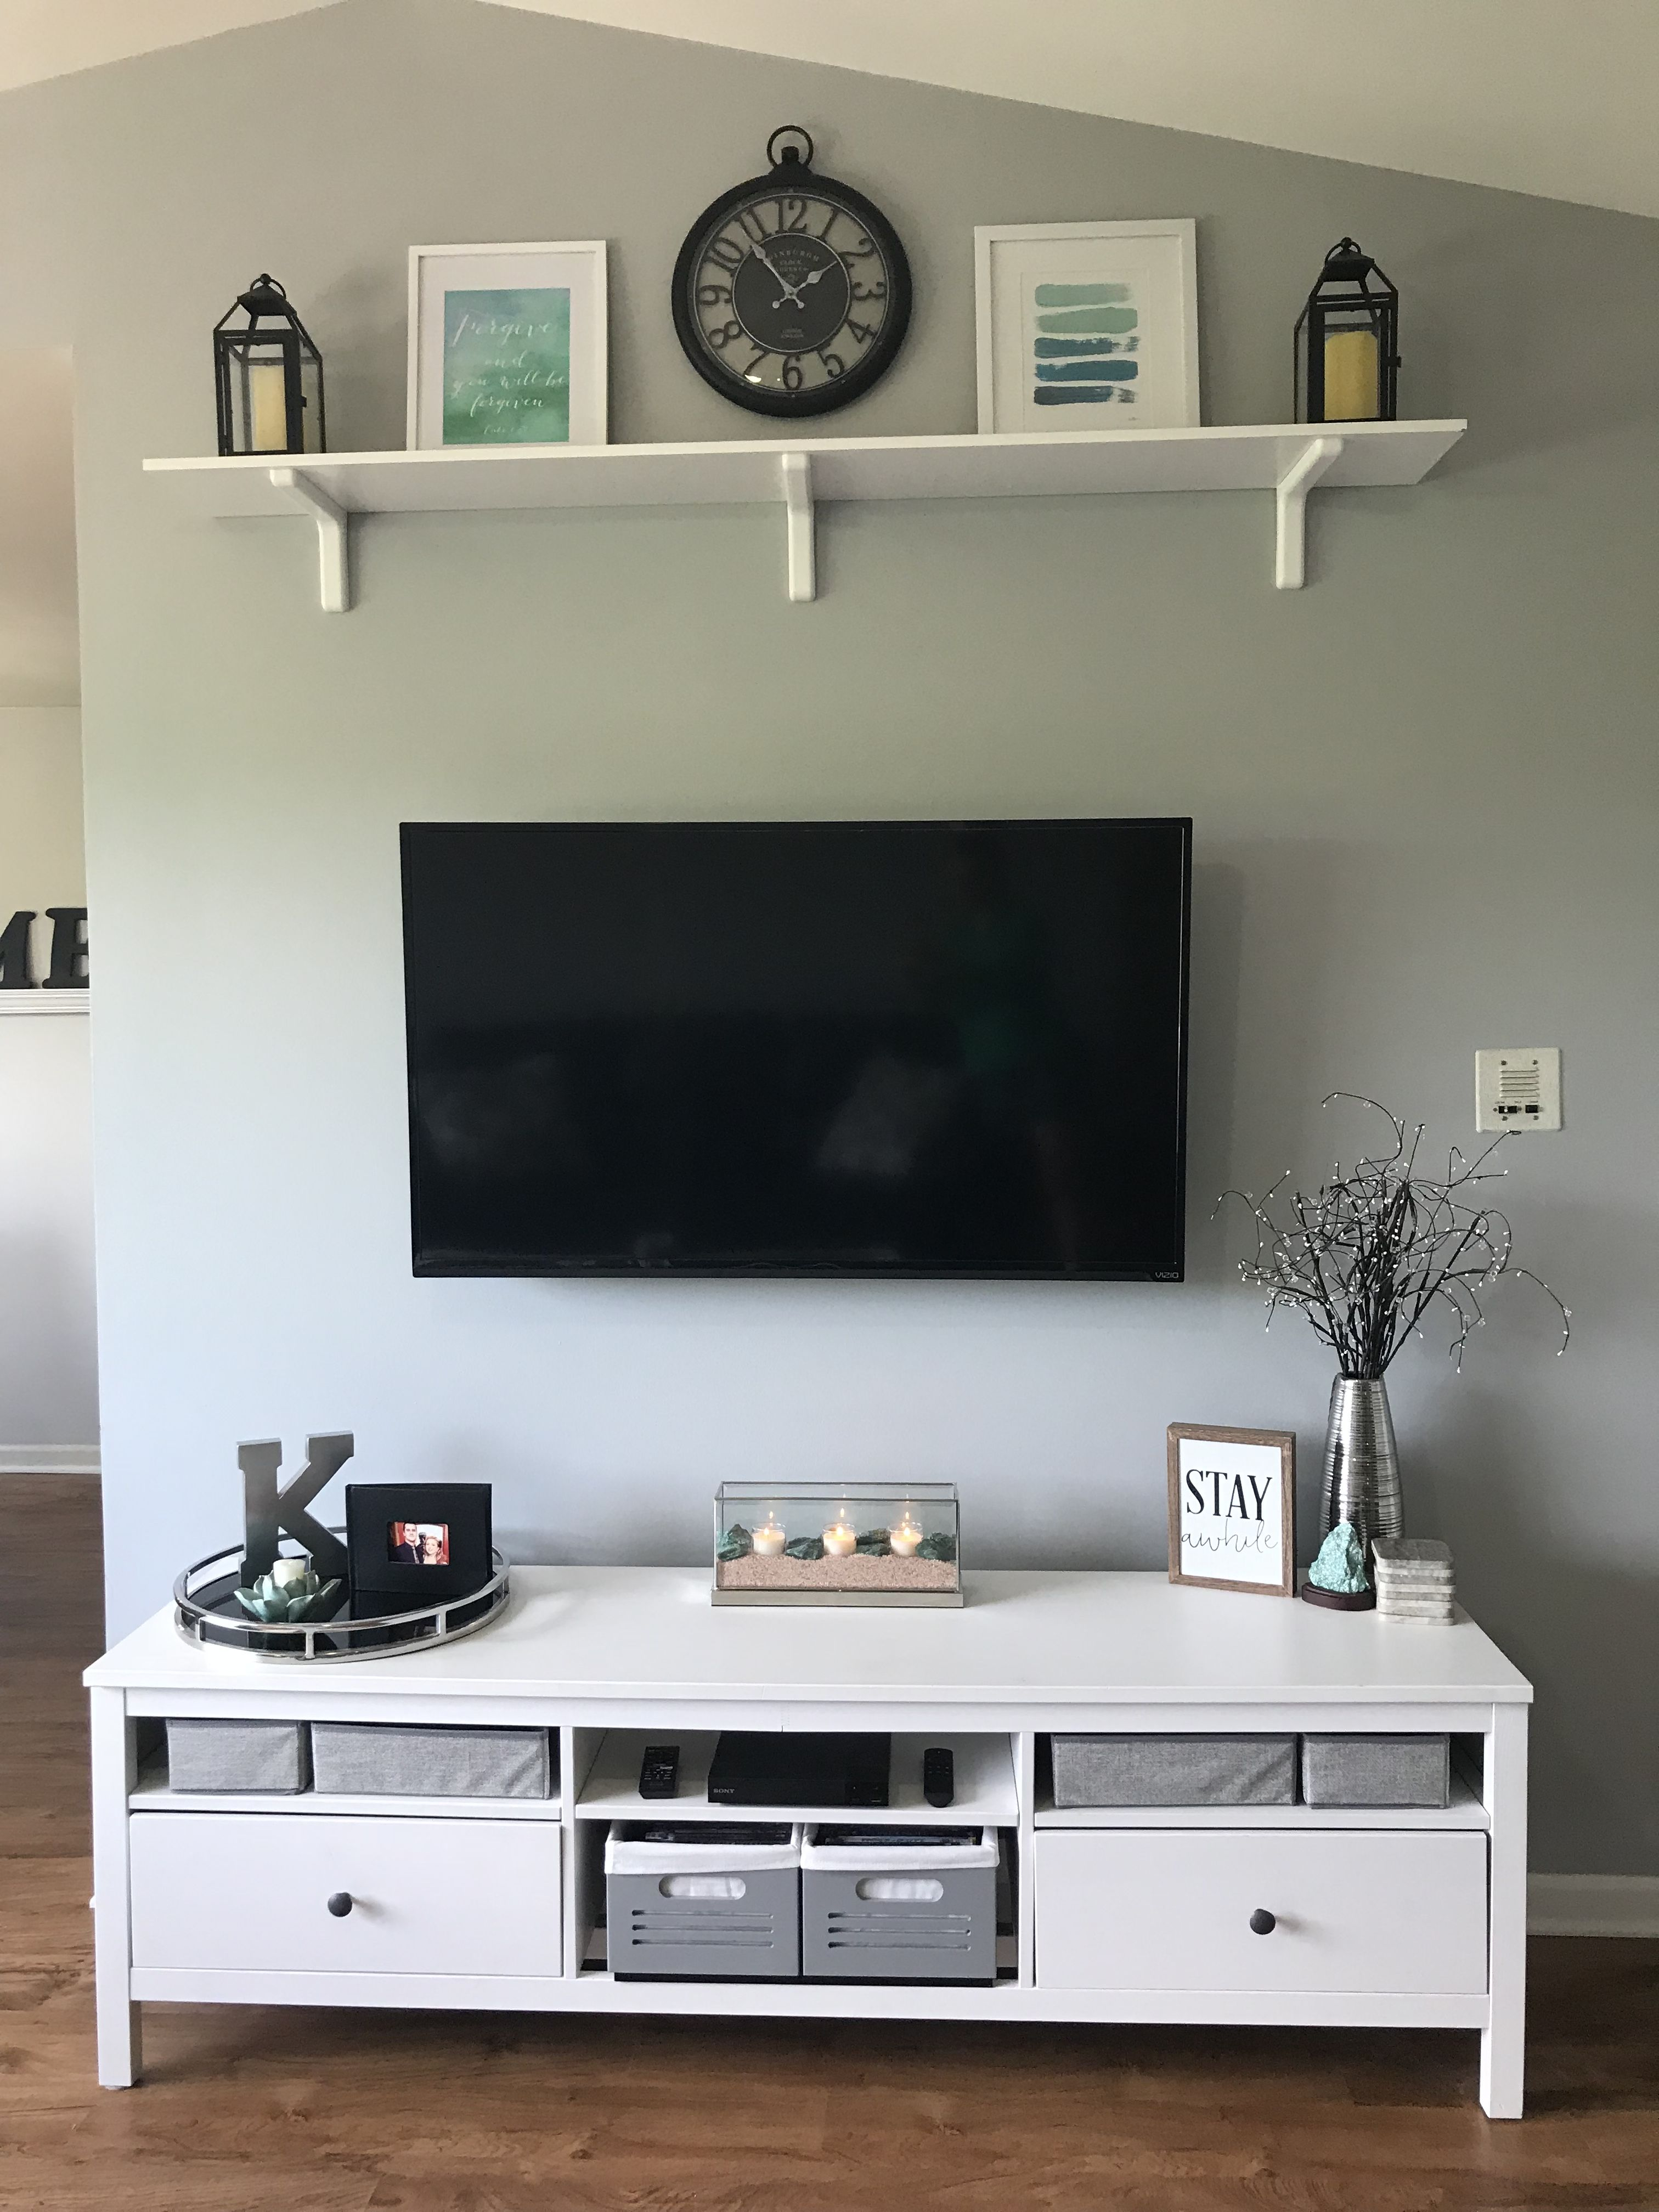 Tv Stand Decor Mounted Tv Tv Stand Decor Living Room Tv Stand Mounted Tv Decor